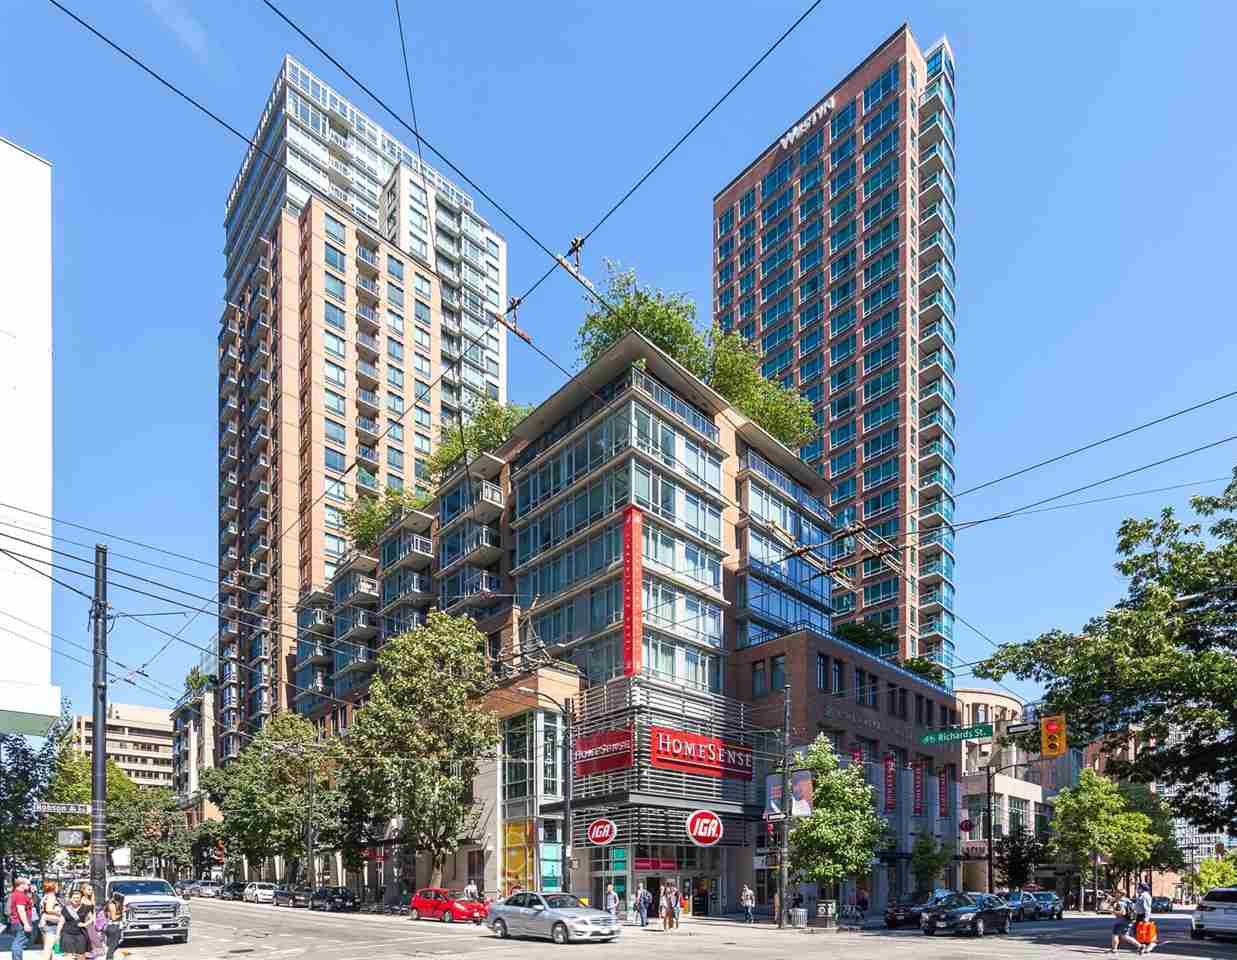 """Main Photo: 905 788 RICHARDS Street in Vancouver: Downtown VW Condo for sale in """"L'Hermitage"""" (Vancouver West)  : MLS®# R2458988"""